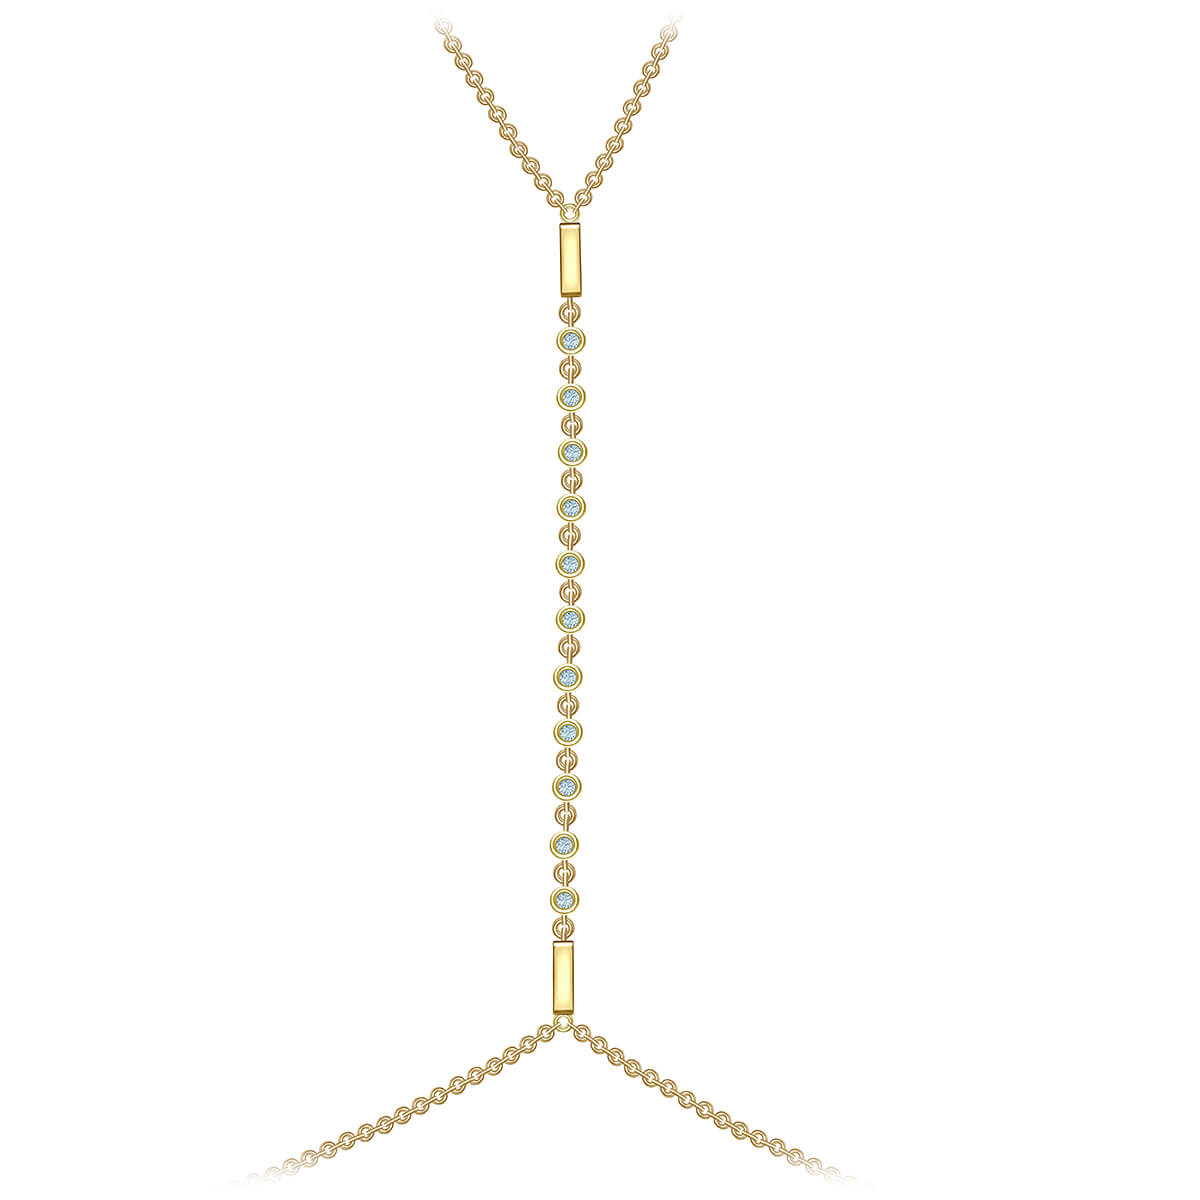 Florence Diamond Body Chain (1/3 CT. TW.)